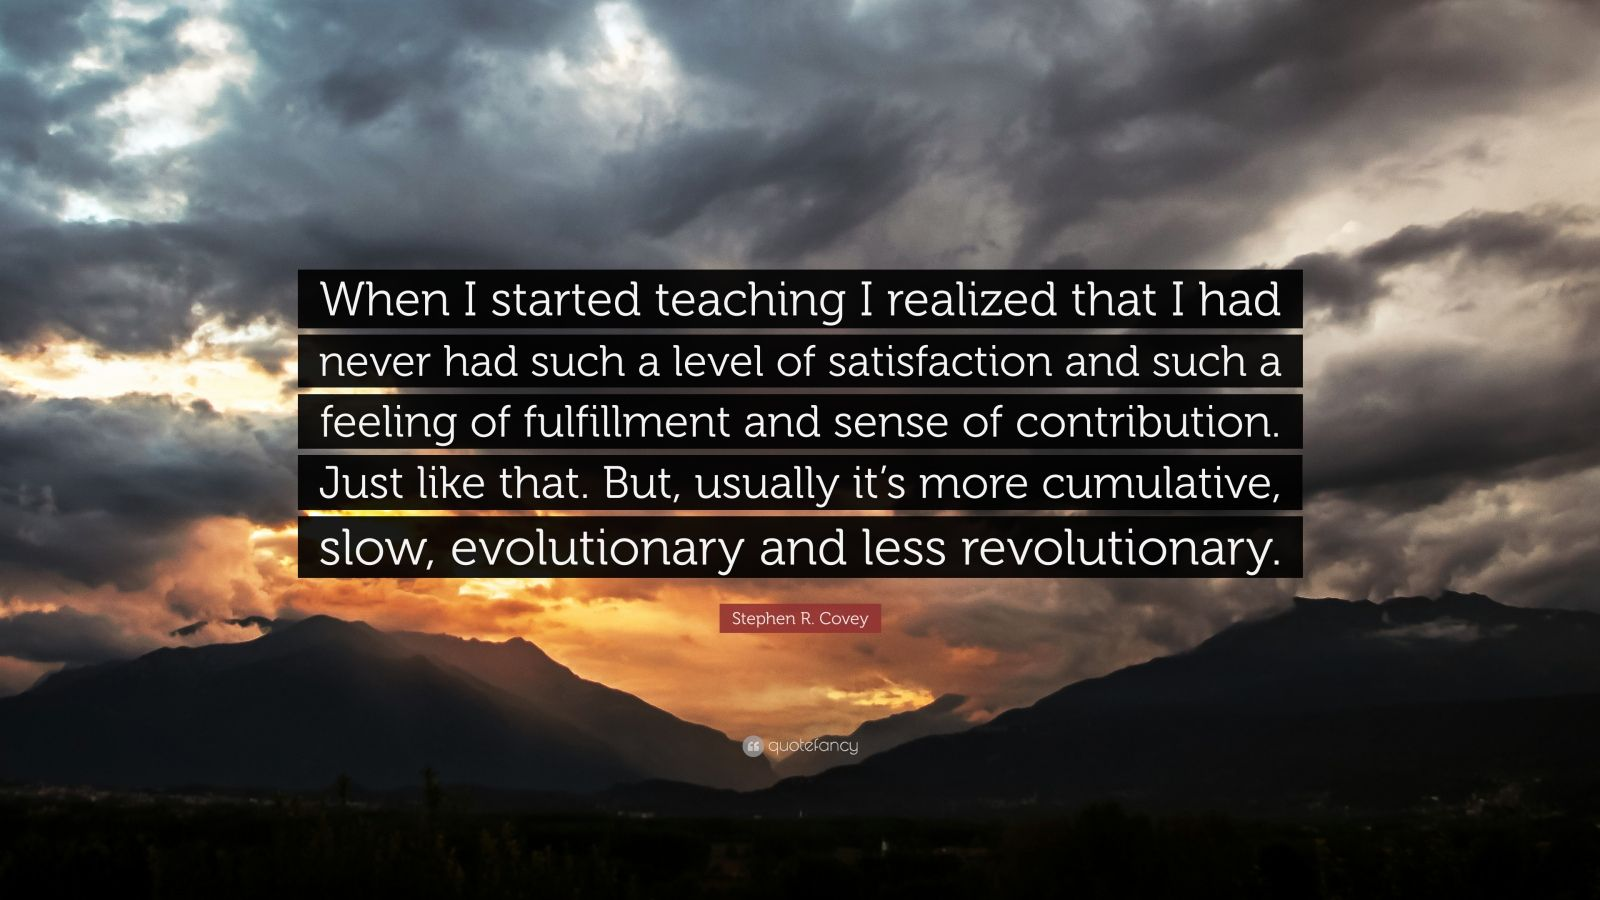 """Stephen R. Covey Quote: """"When I started teaching I realized that I had never had such a level of satisfaction and such a feeling of fulfillment and sense of contribution. Just like that. But, usually it's more cumulative, slow, evolutionary and less revolutionary."""""""